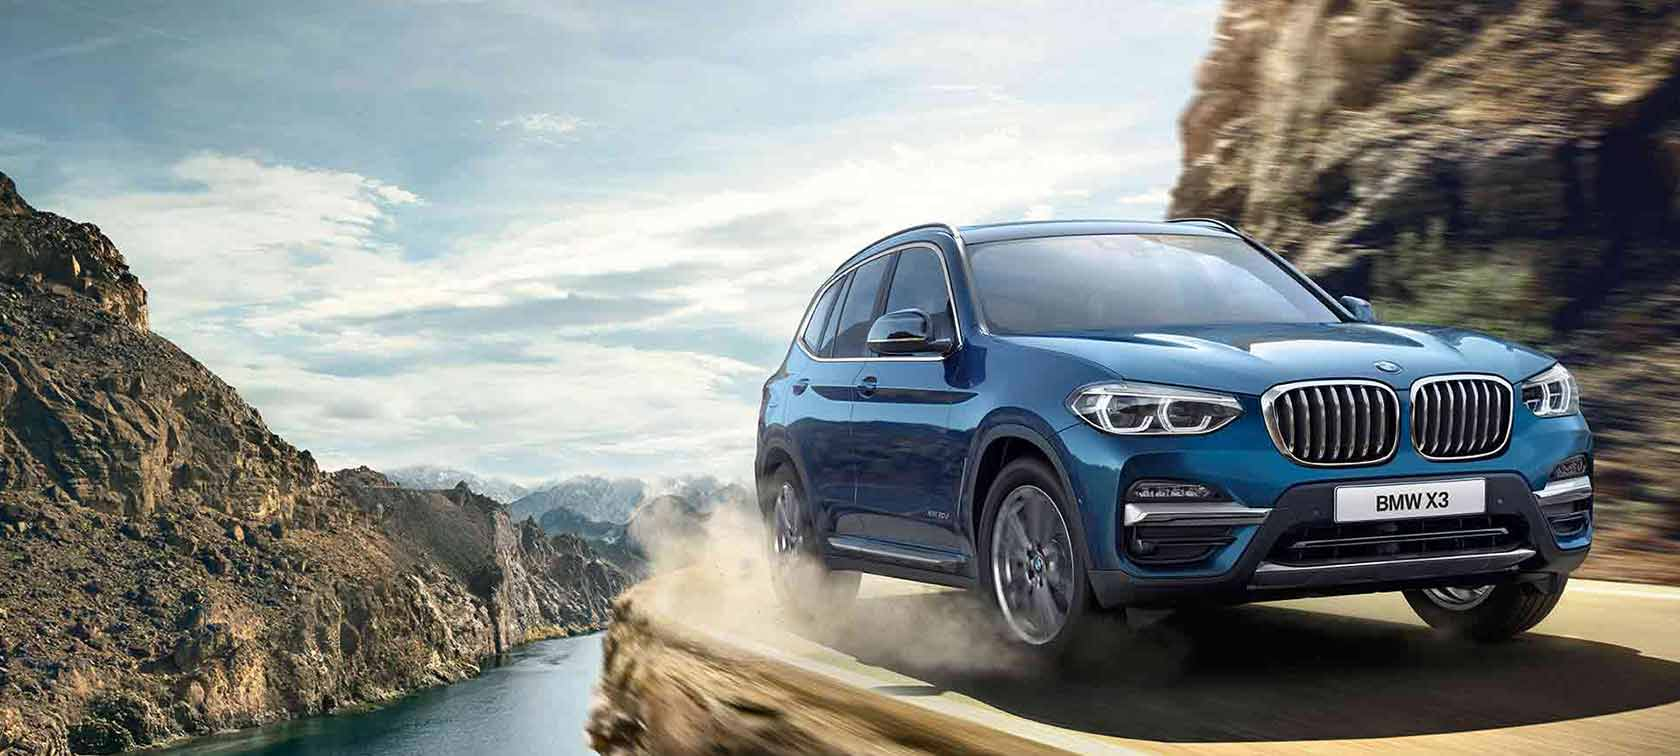 THE BMW X3